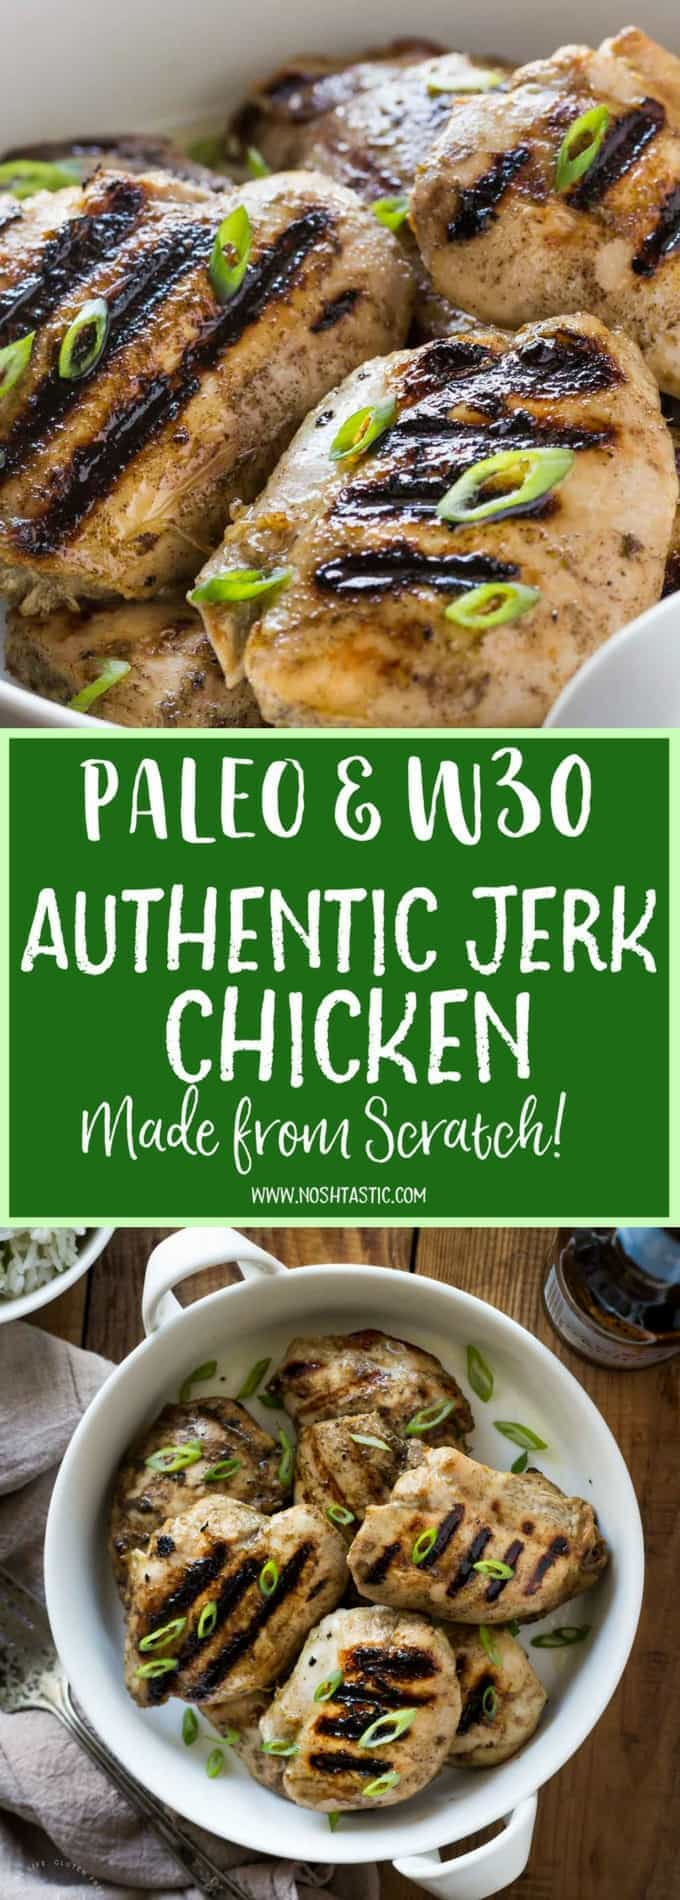 My authentic Paleo jerk chicken recipe is homemade from scratch and packs a fabulous flavor punch!! it's gluten free, and whole30 too and the marinade can be made in seconds in your blender